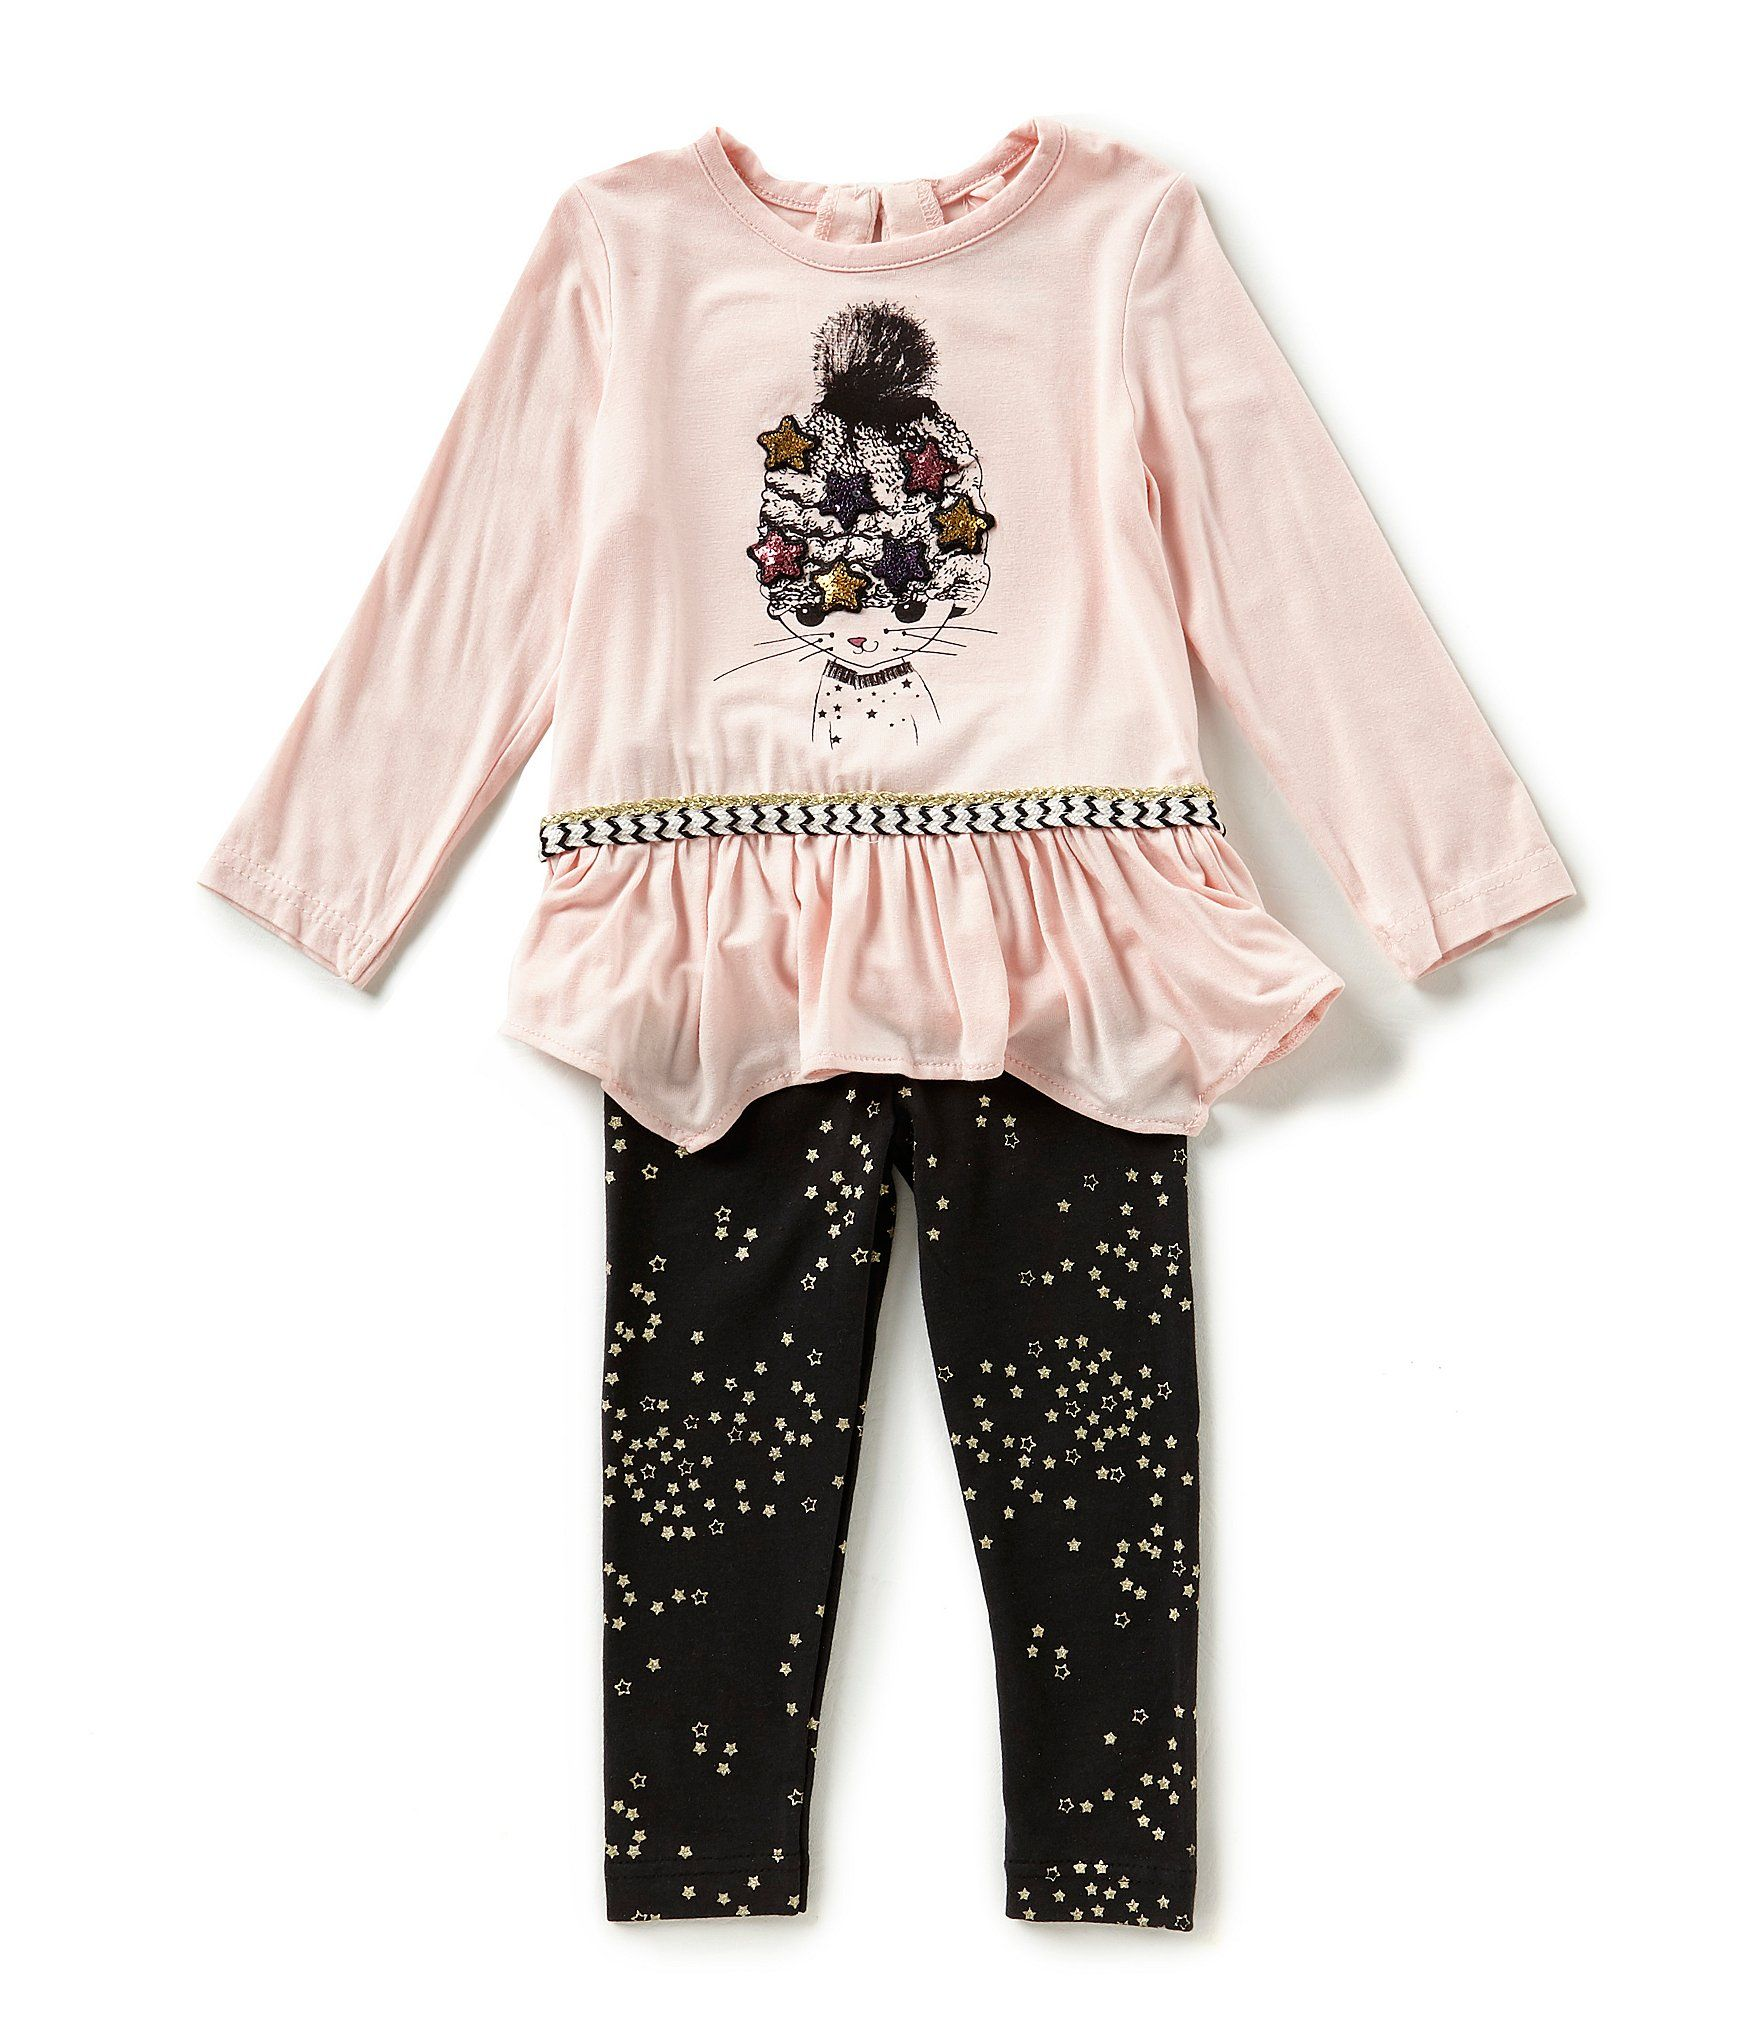 Jessica Simpson Baby Clothes Interesting Jessica Simpson Baby Girls 1224 Months Cat Longsleeve Top Design Inspiration